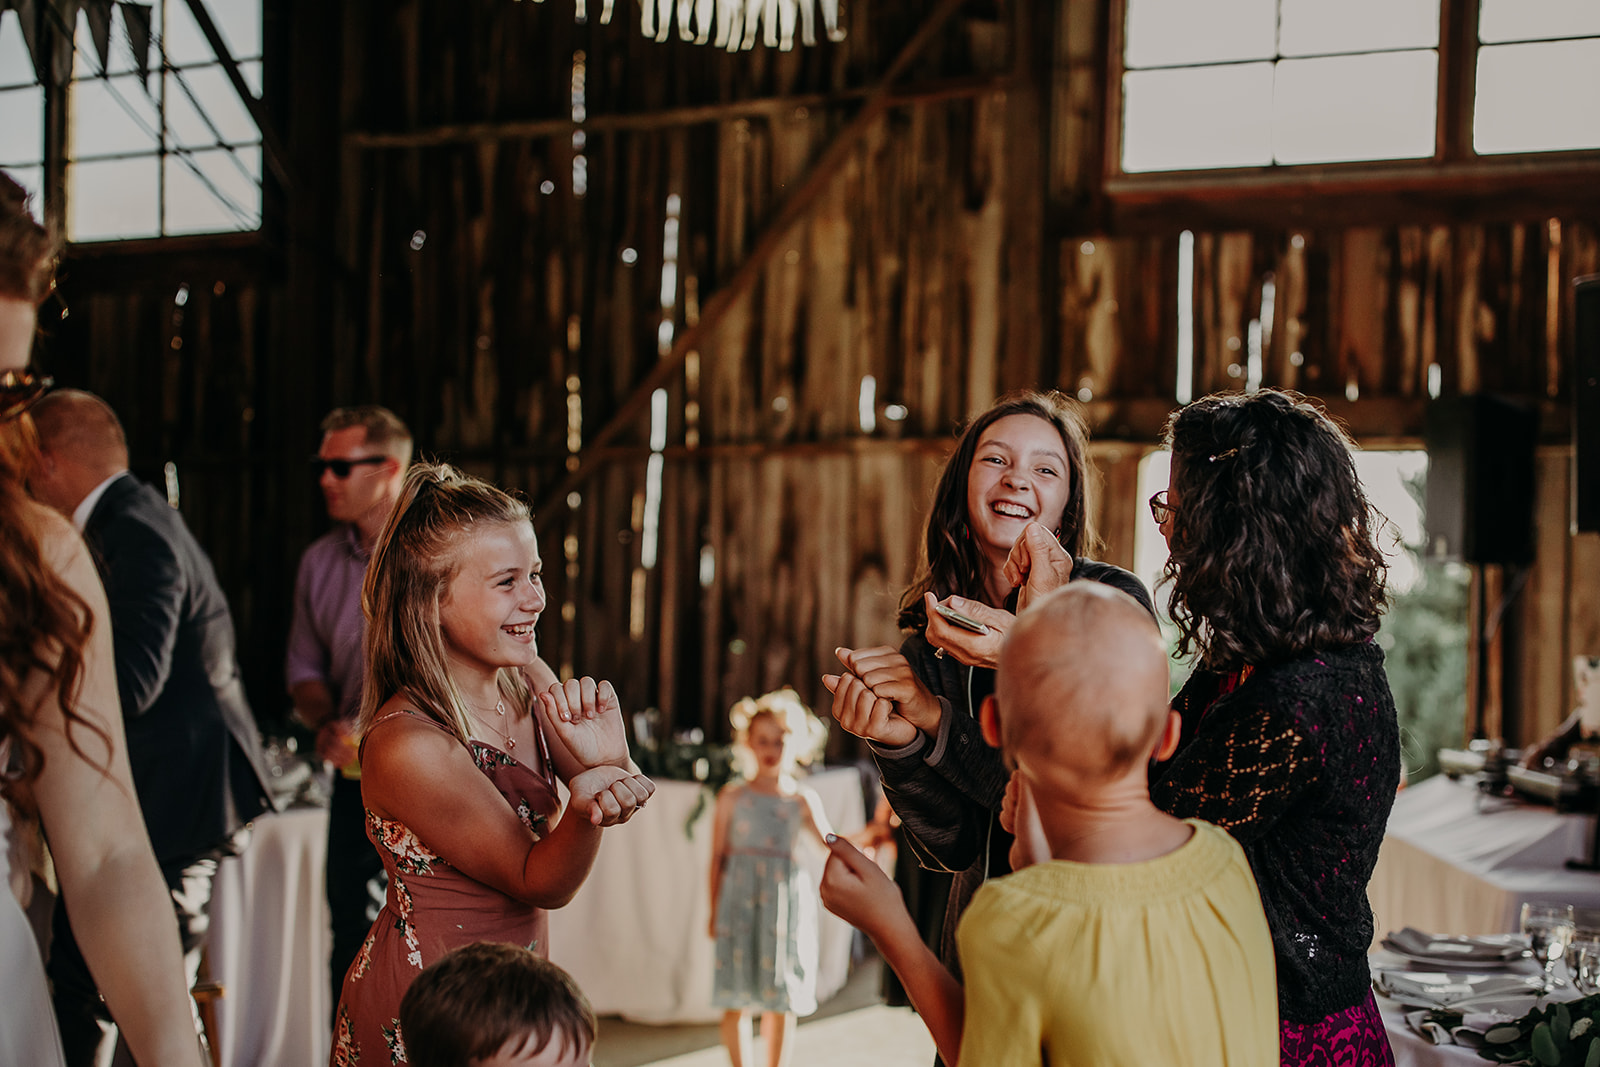 salt-box-barn-wedding-megan-gallagher-photography-4_(286_of_329).jpg